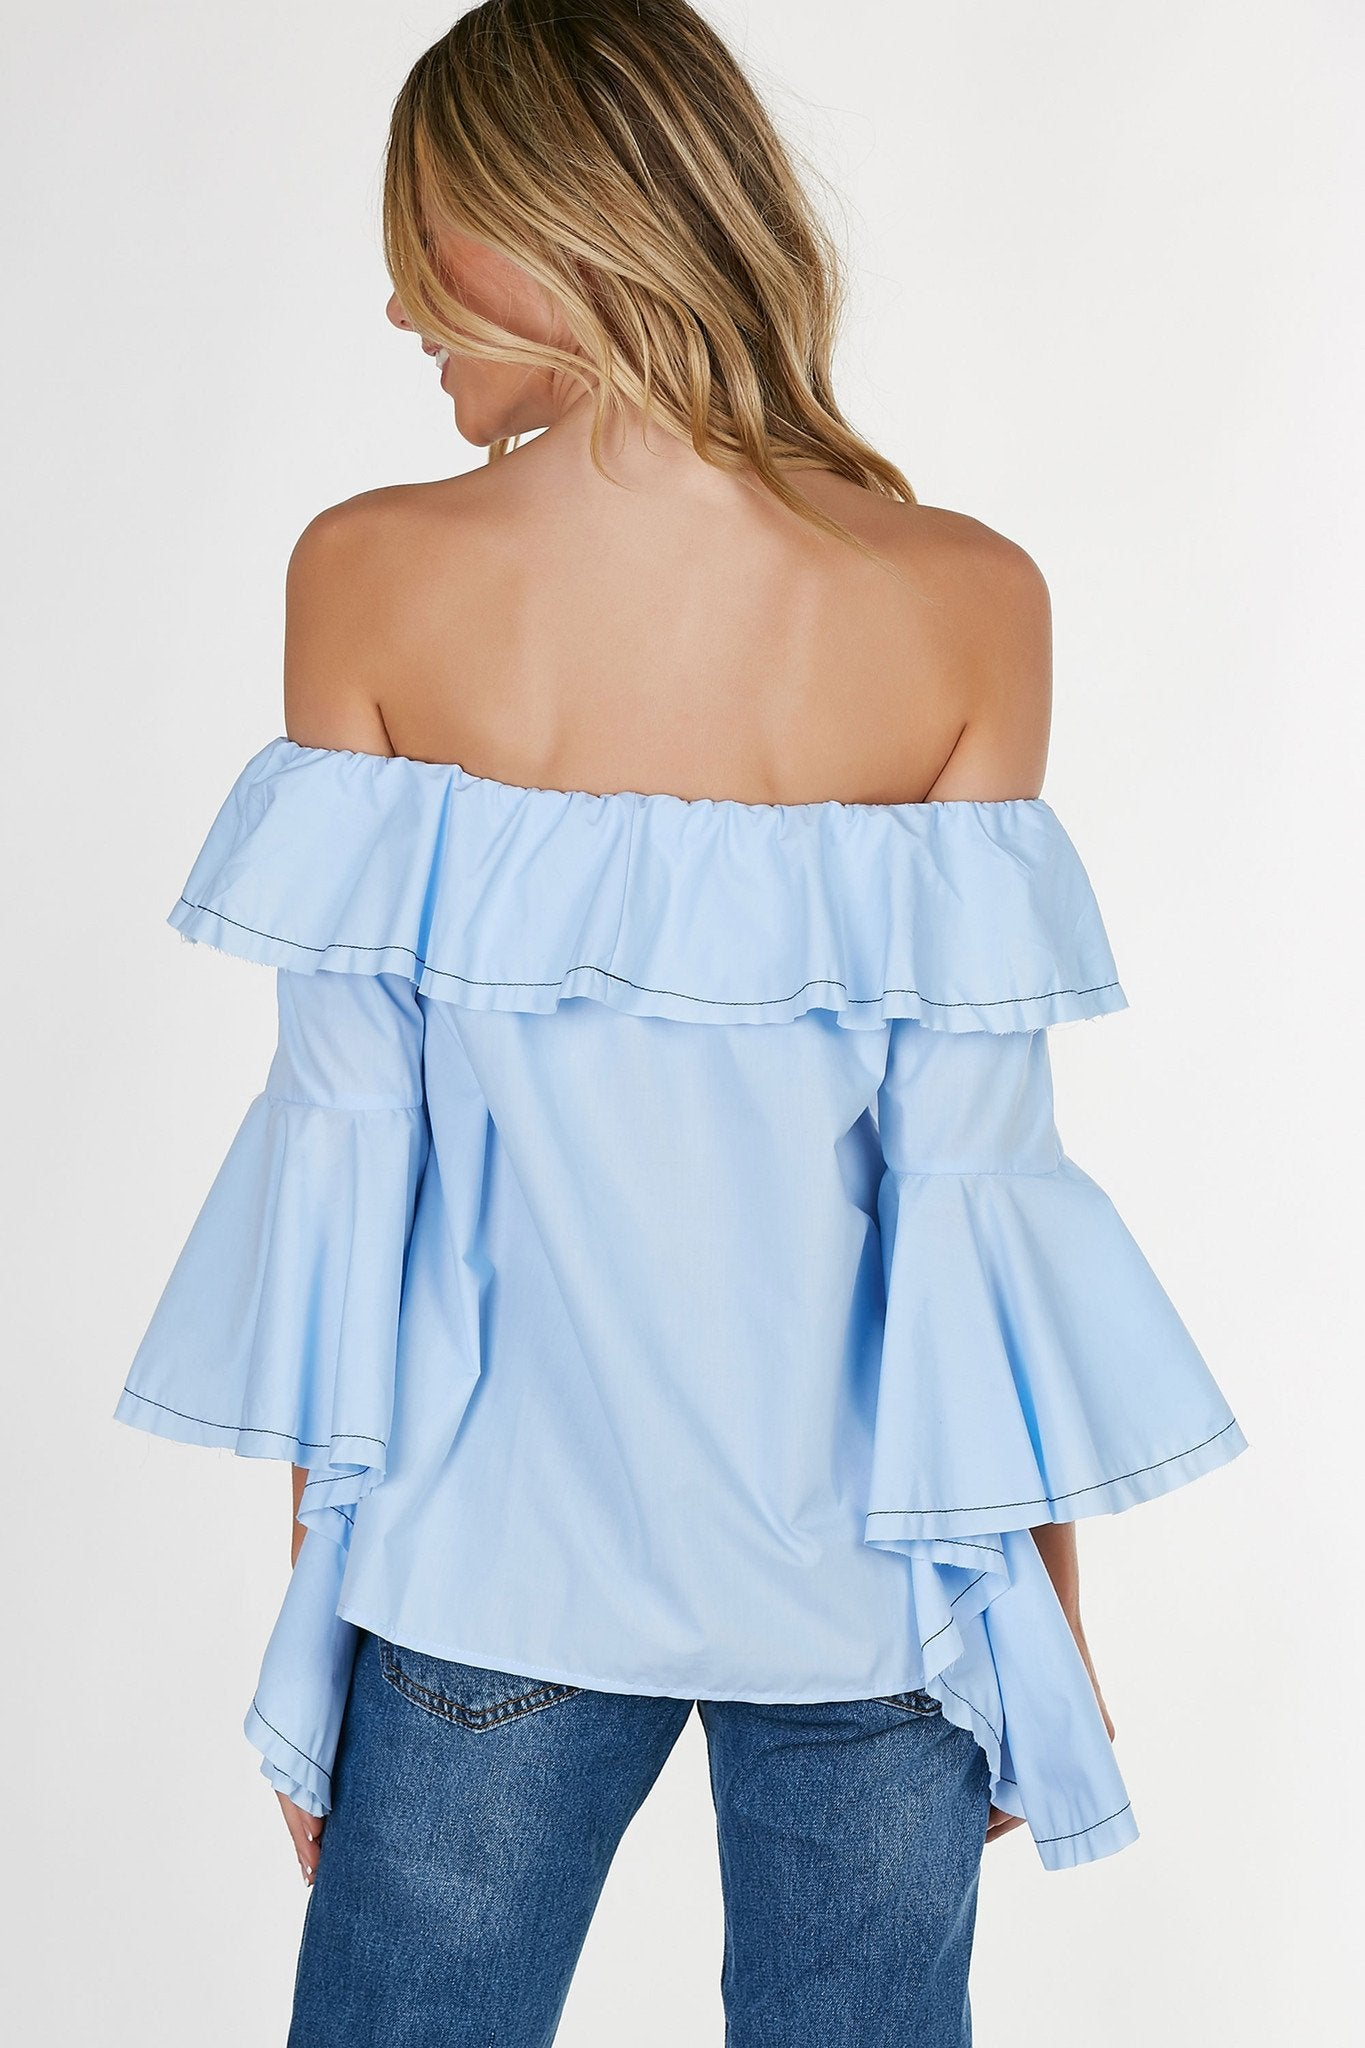 Flirty off shoulder blouse with ruffle tier at neckline. Flared, bell sleeves with contrast seamwork at hem all around.